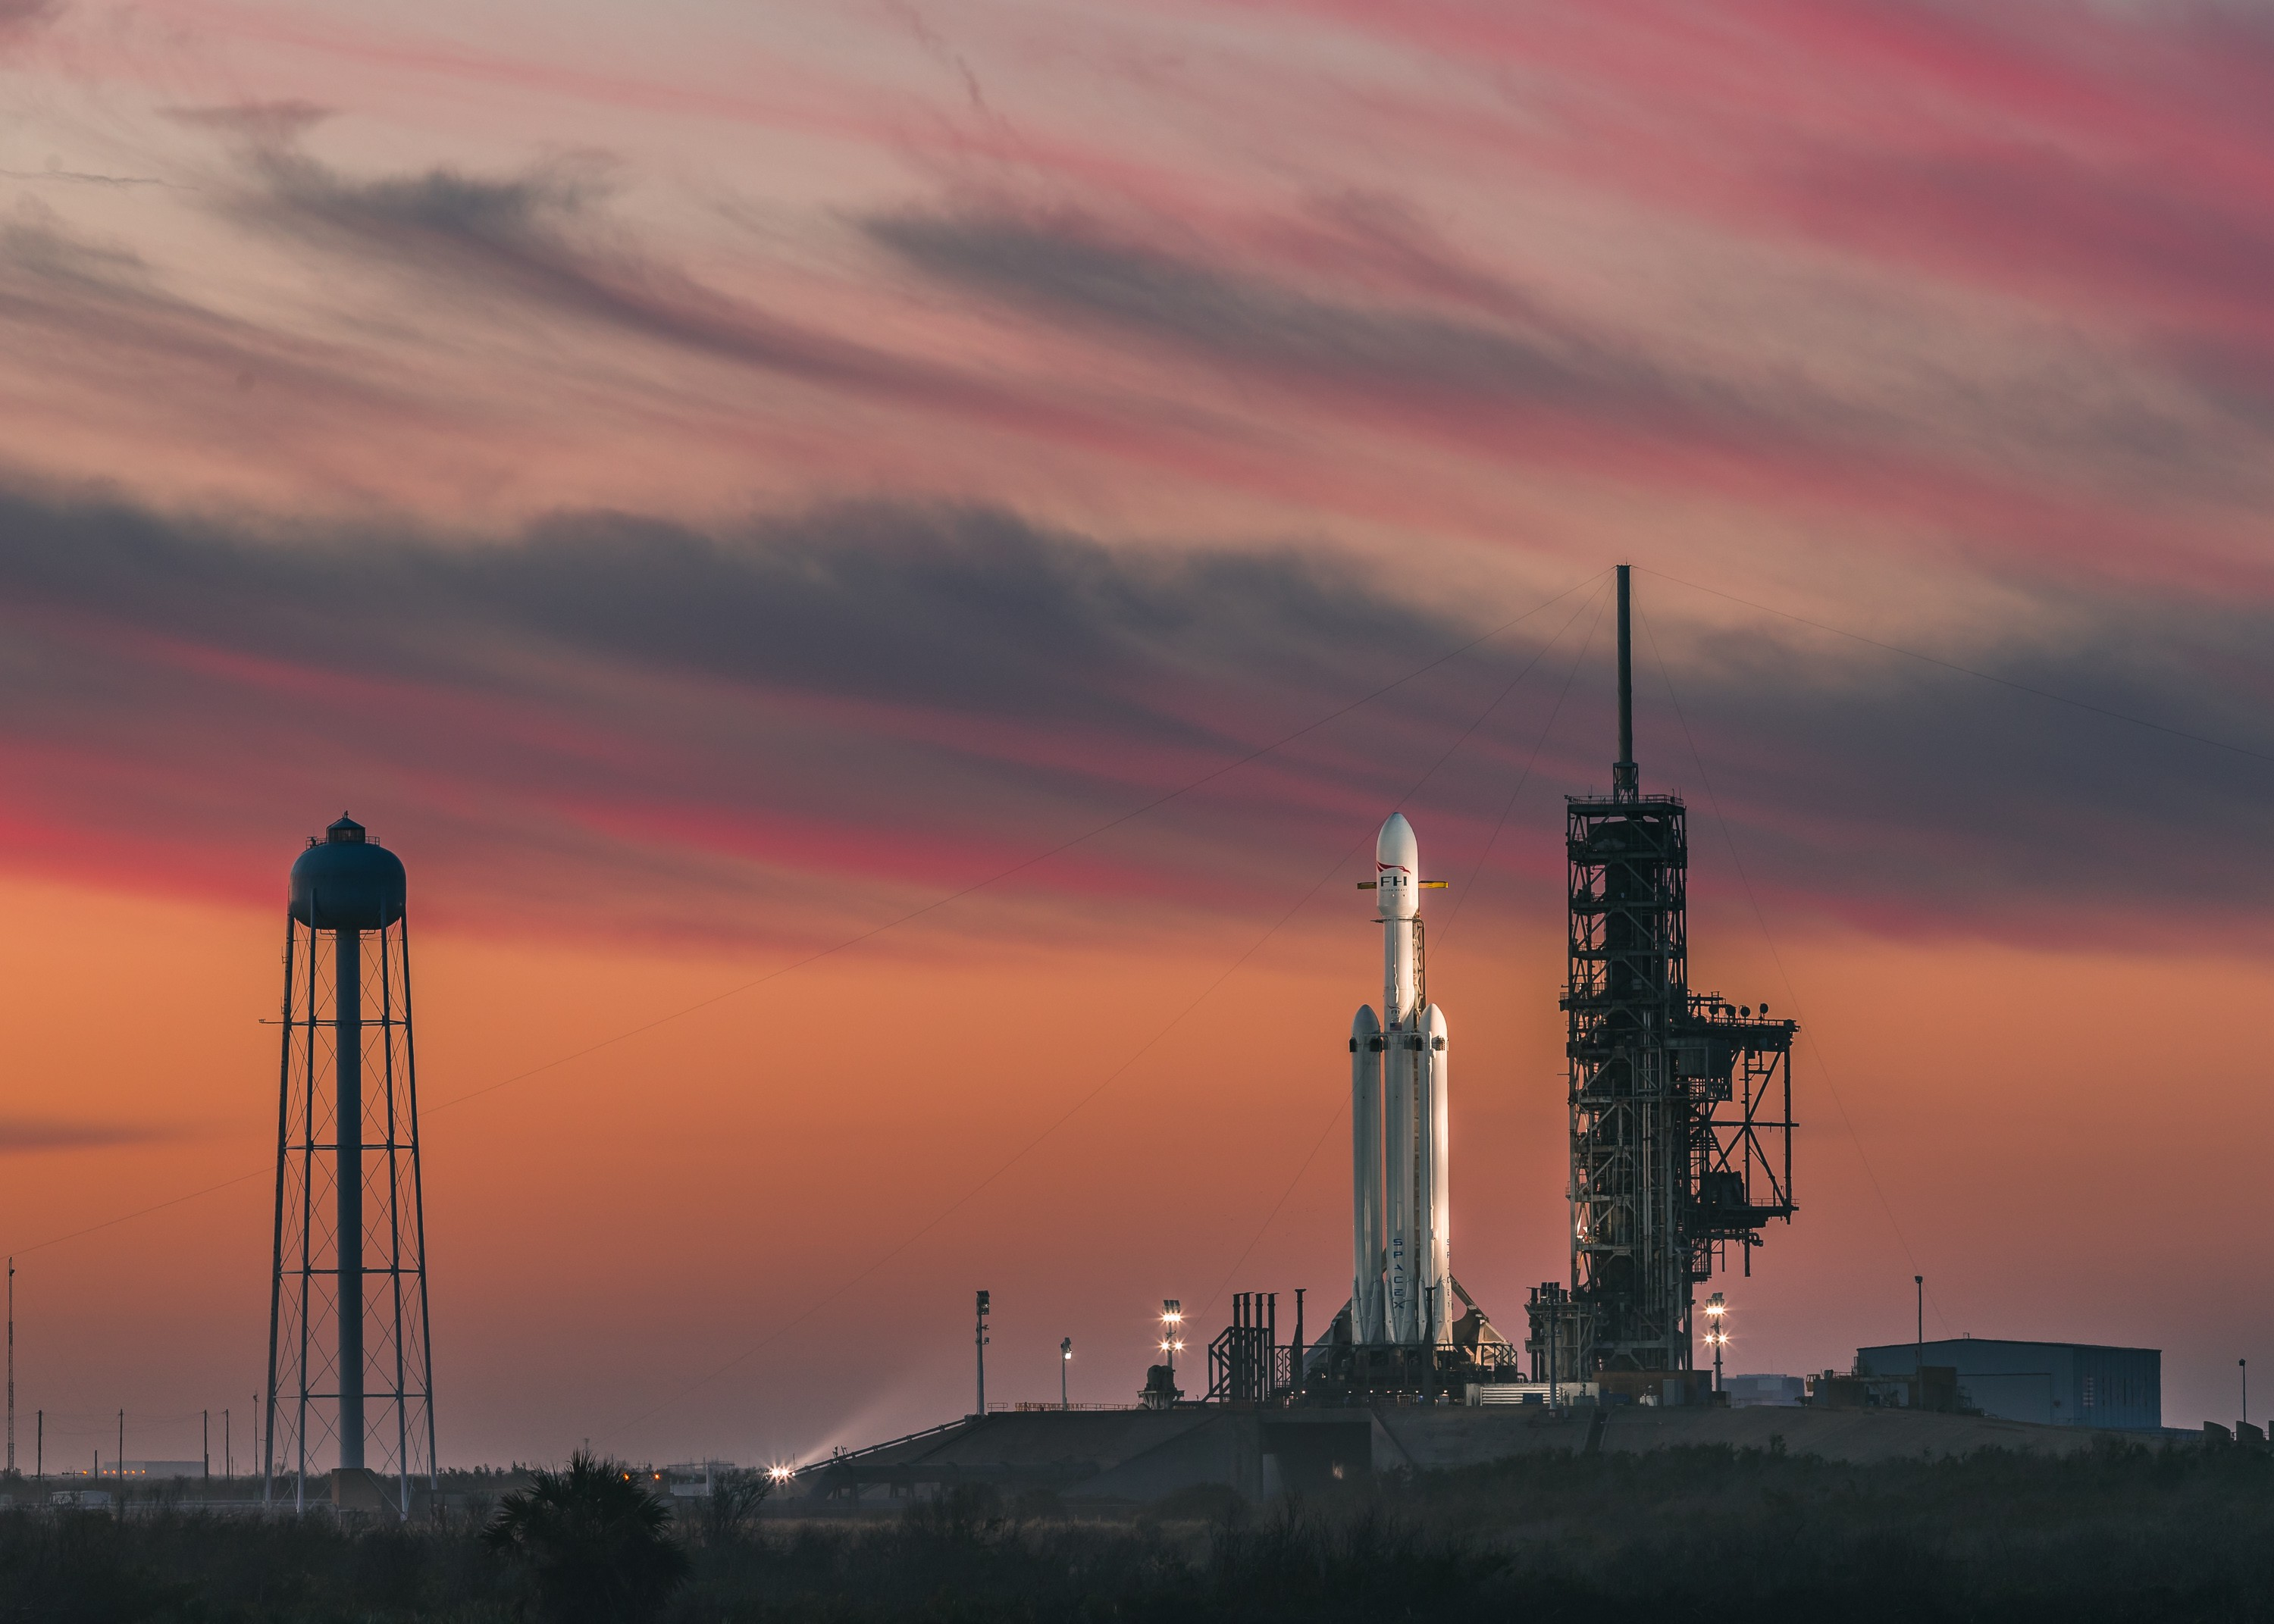 Falcon Heavy on the pad before its demo mission. Image credit: SpaceX